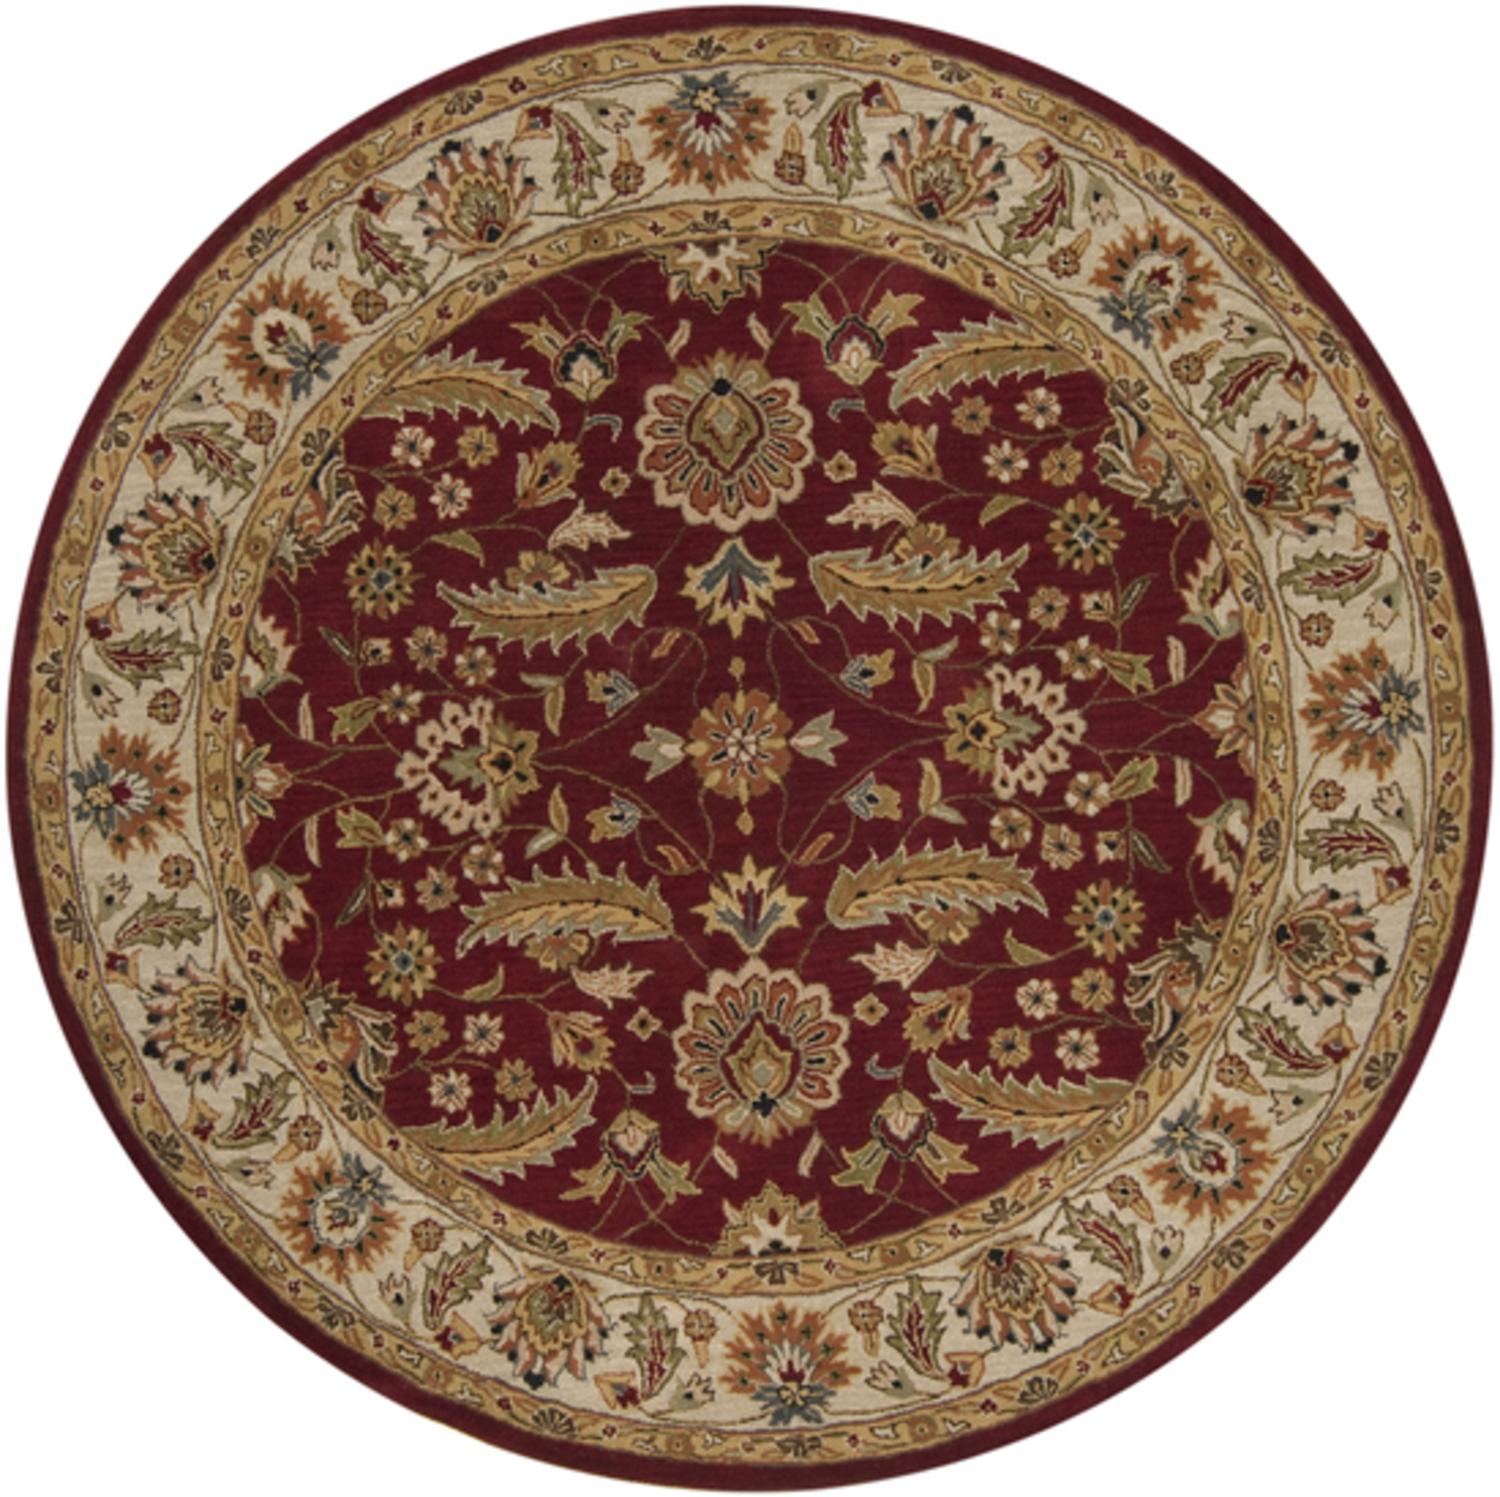 6' Antonius Maroon and Bronze Hand Tufted Round Wool Area Throw Rug